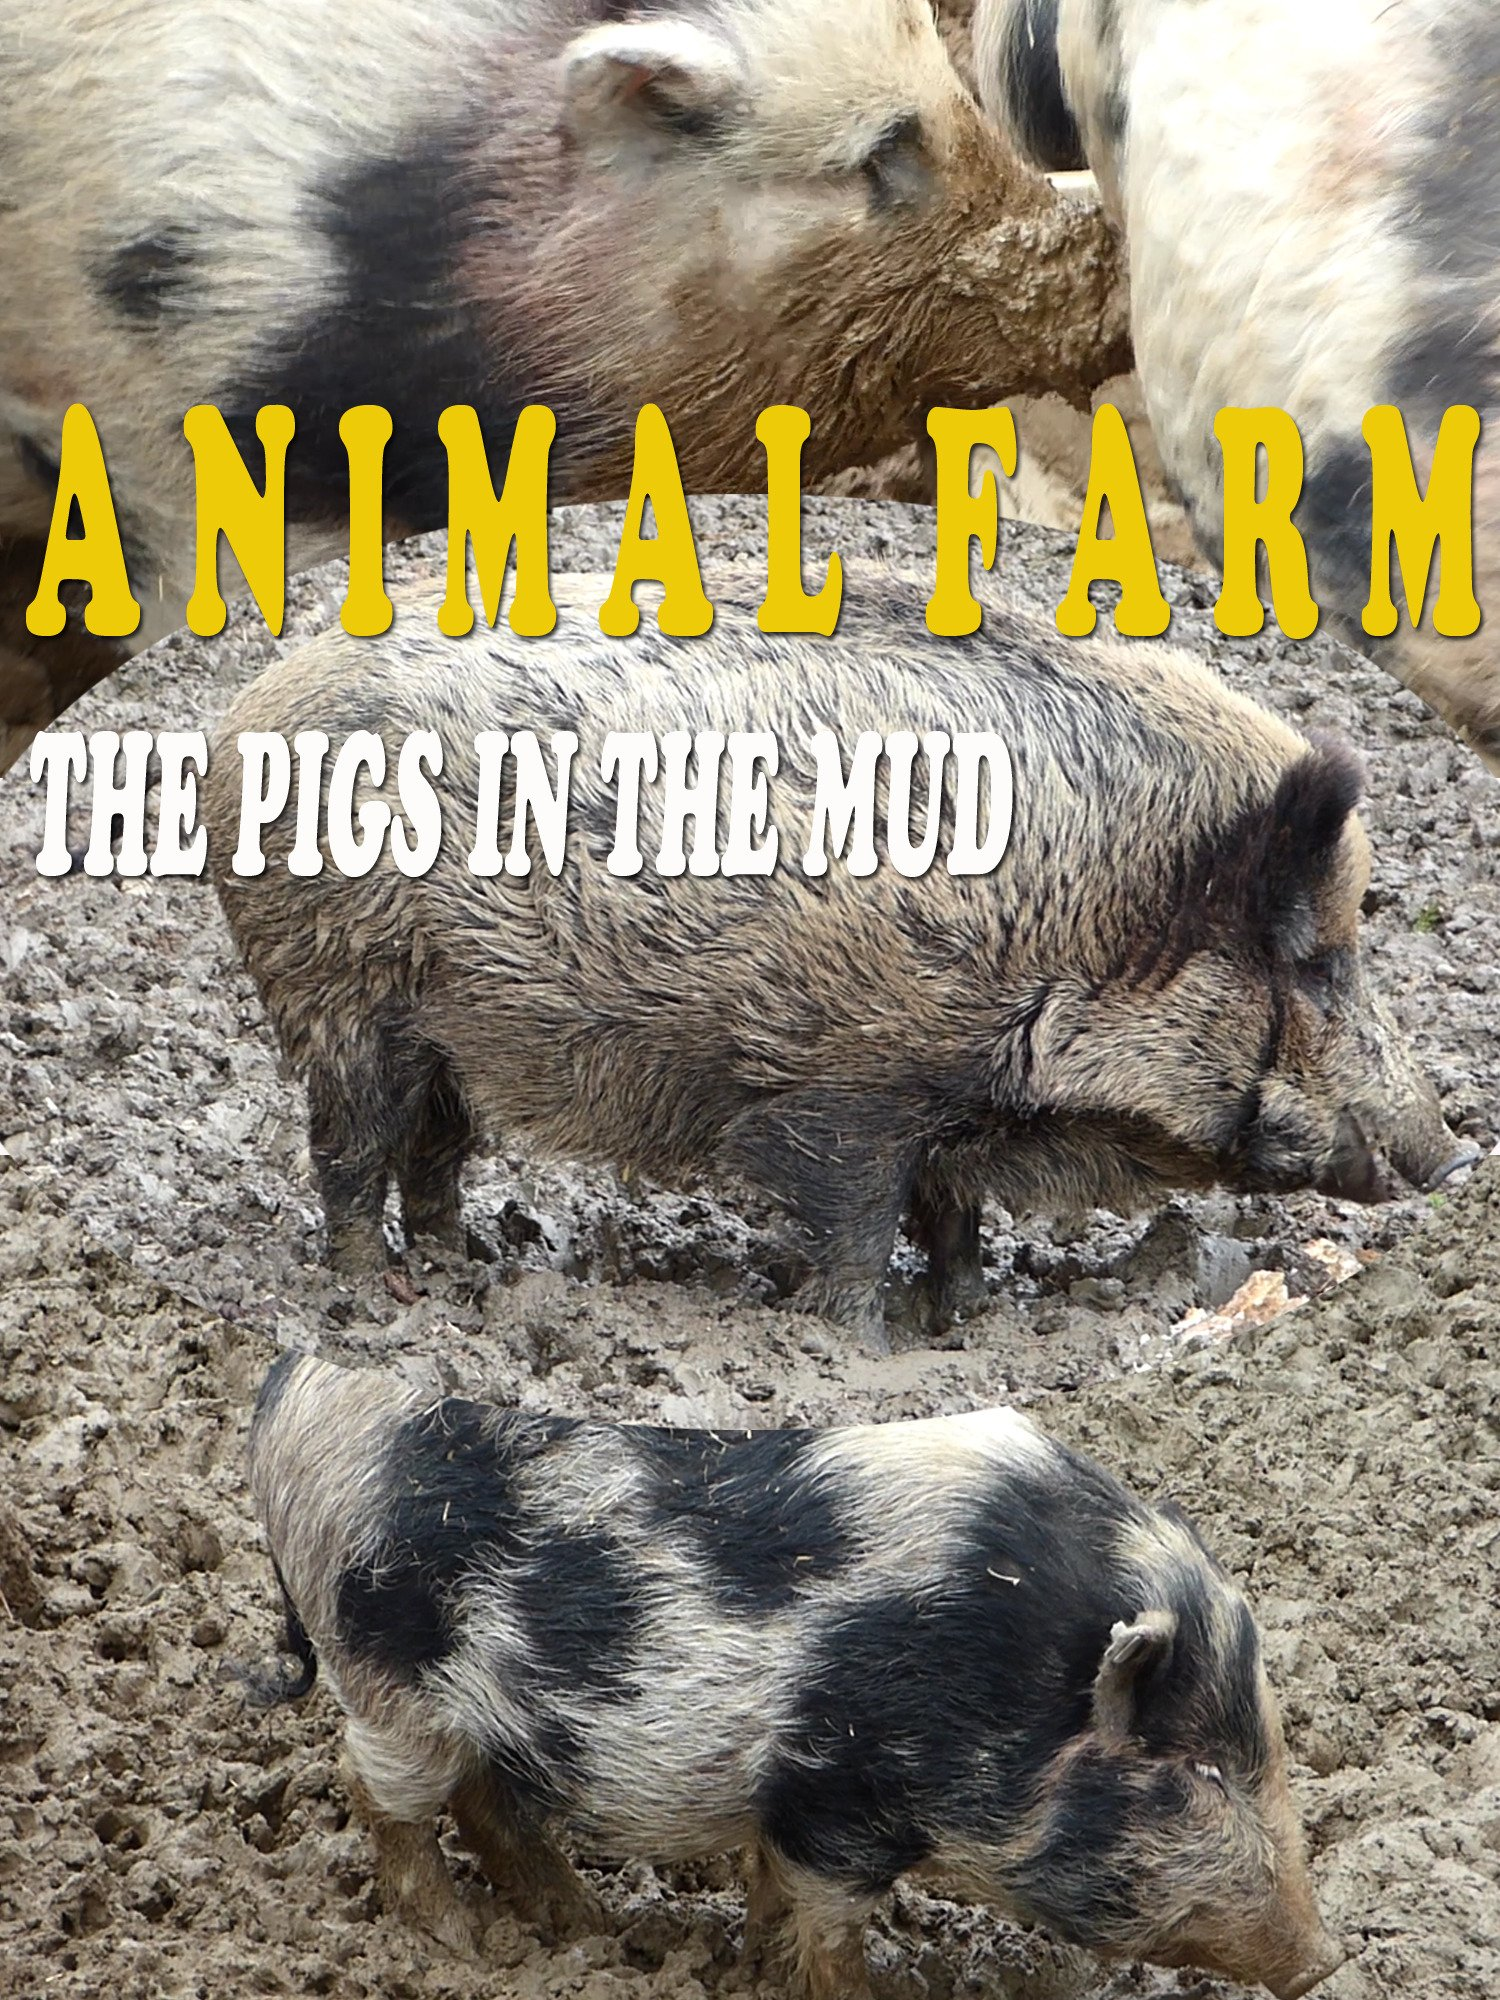 Animal farm. The pigs in the mud